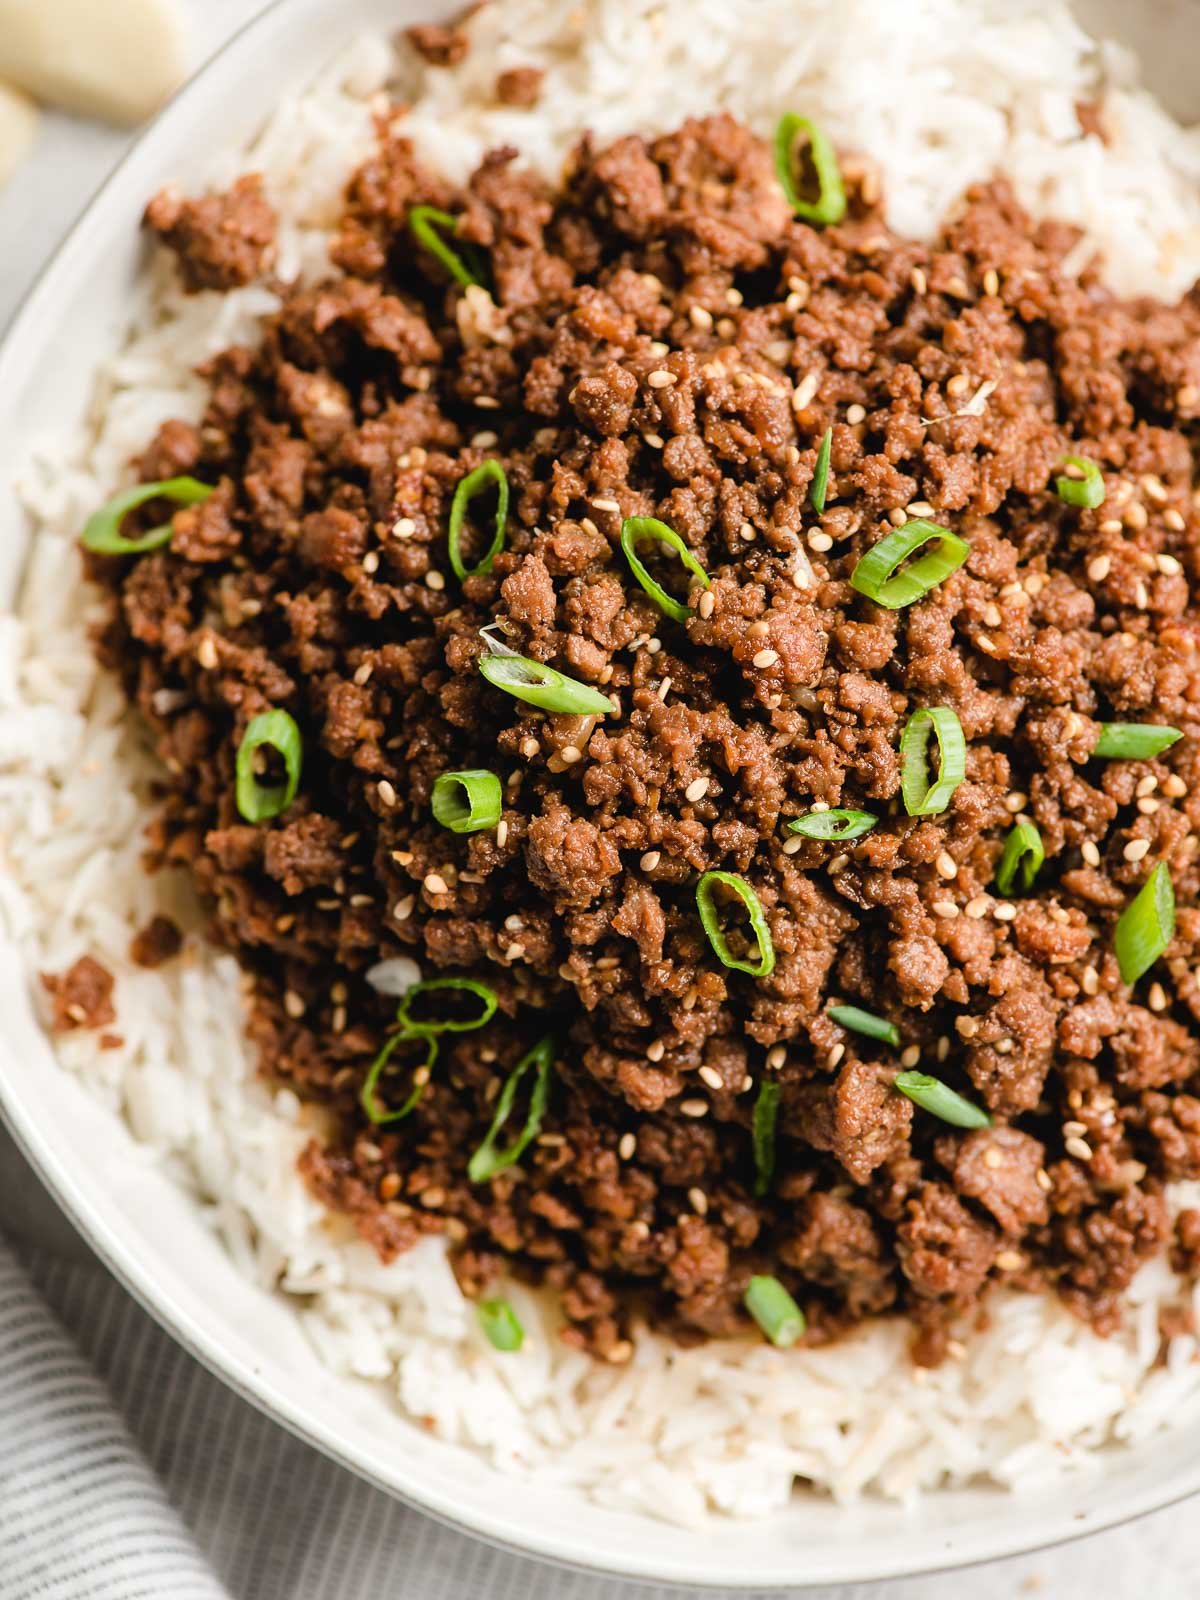 Top down image of ground beef bulgogi in a white bowl.